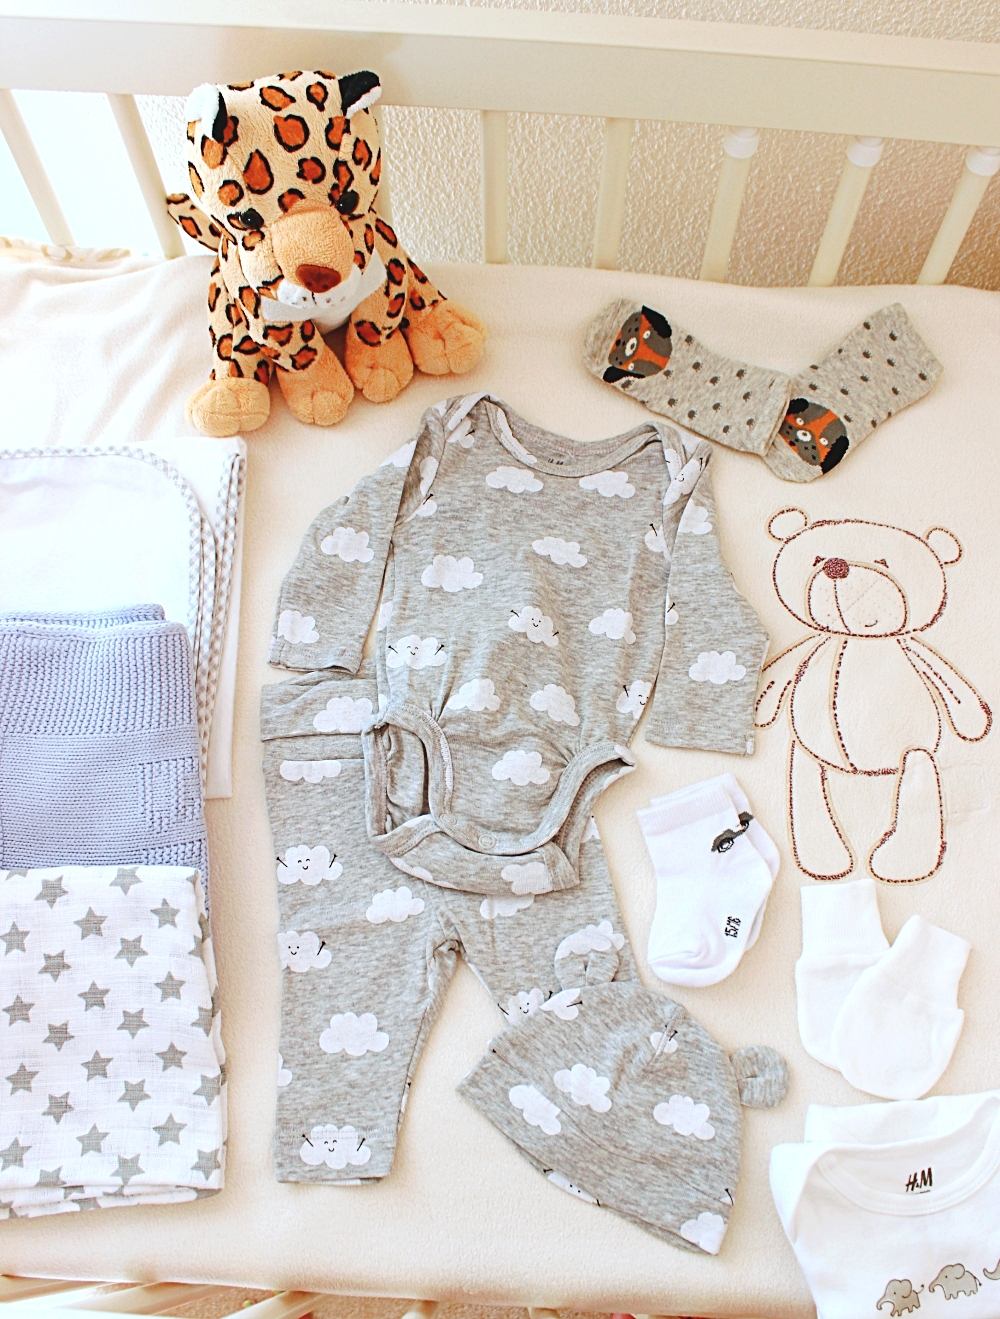 hospital bag checklist for baby, what to pack for a baby boy in hospital bag